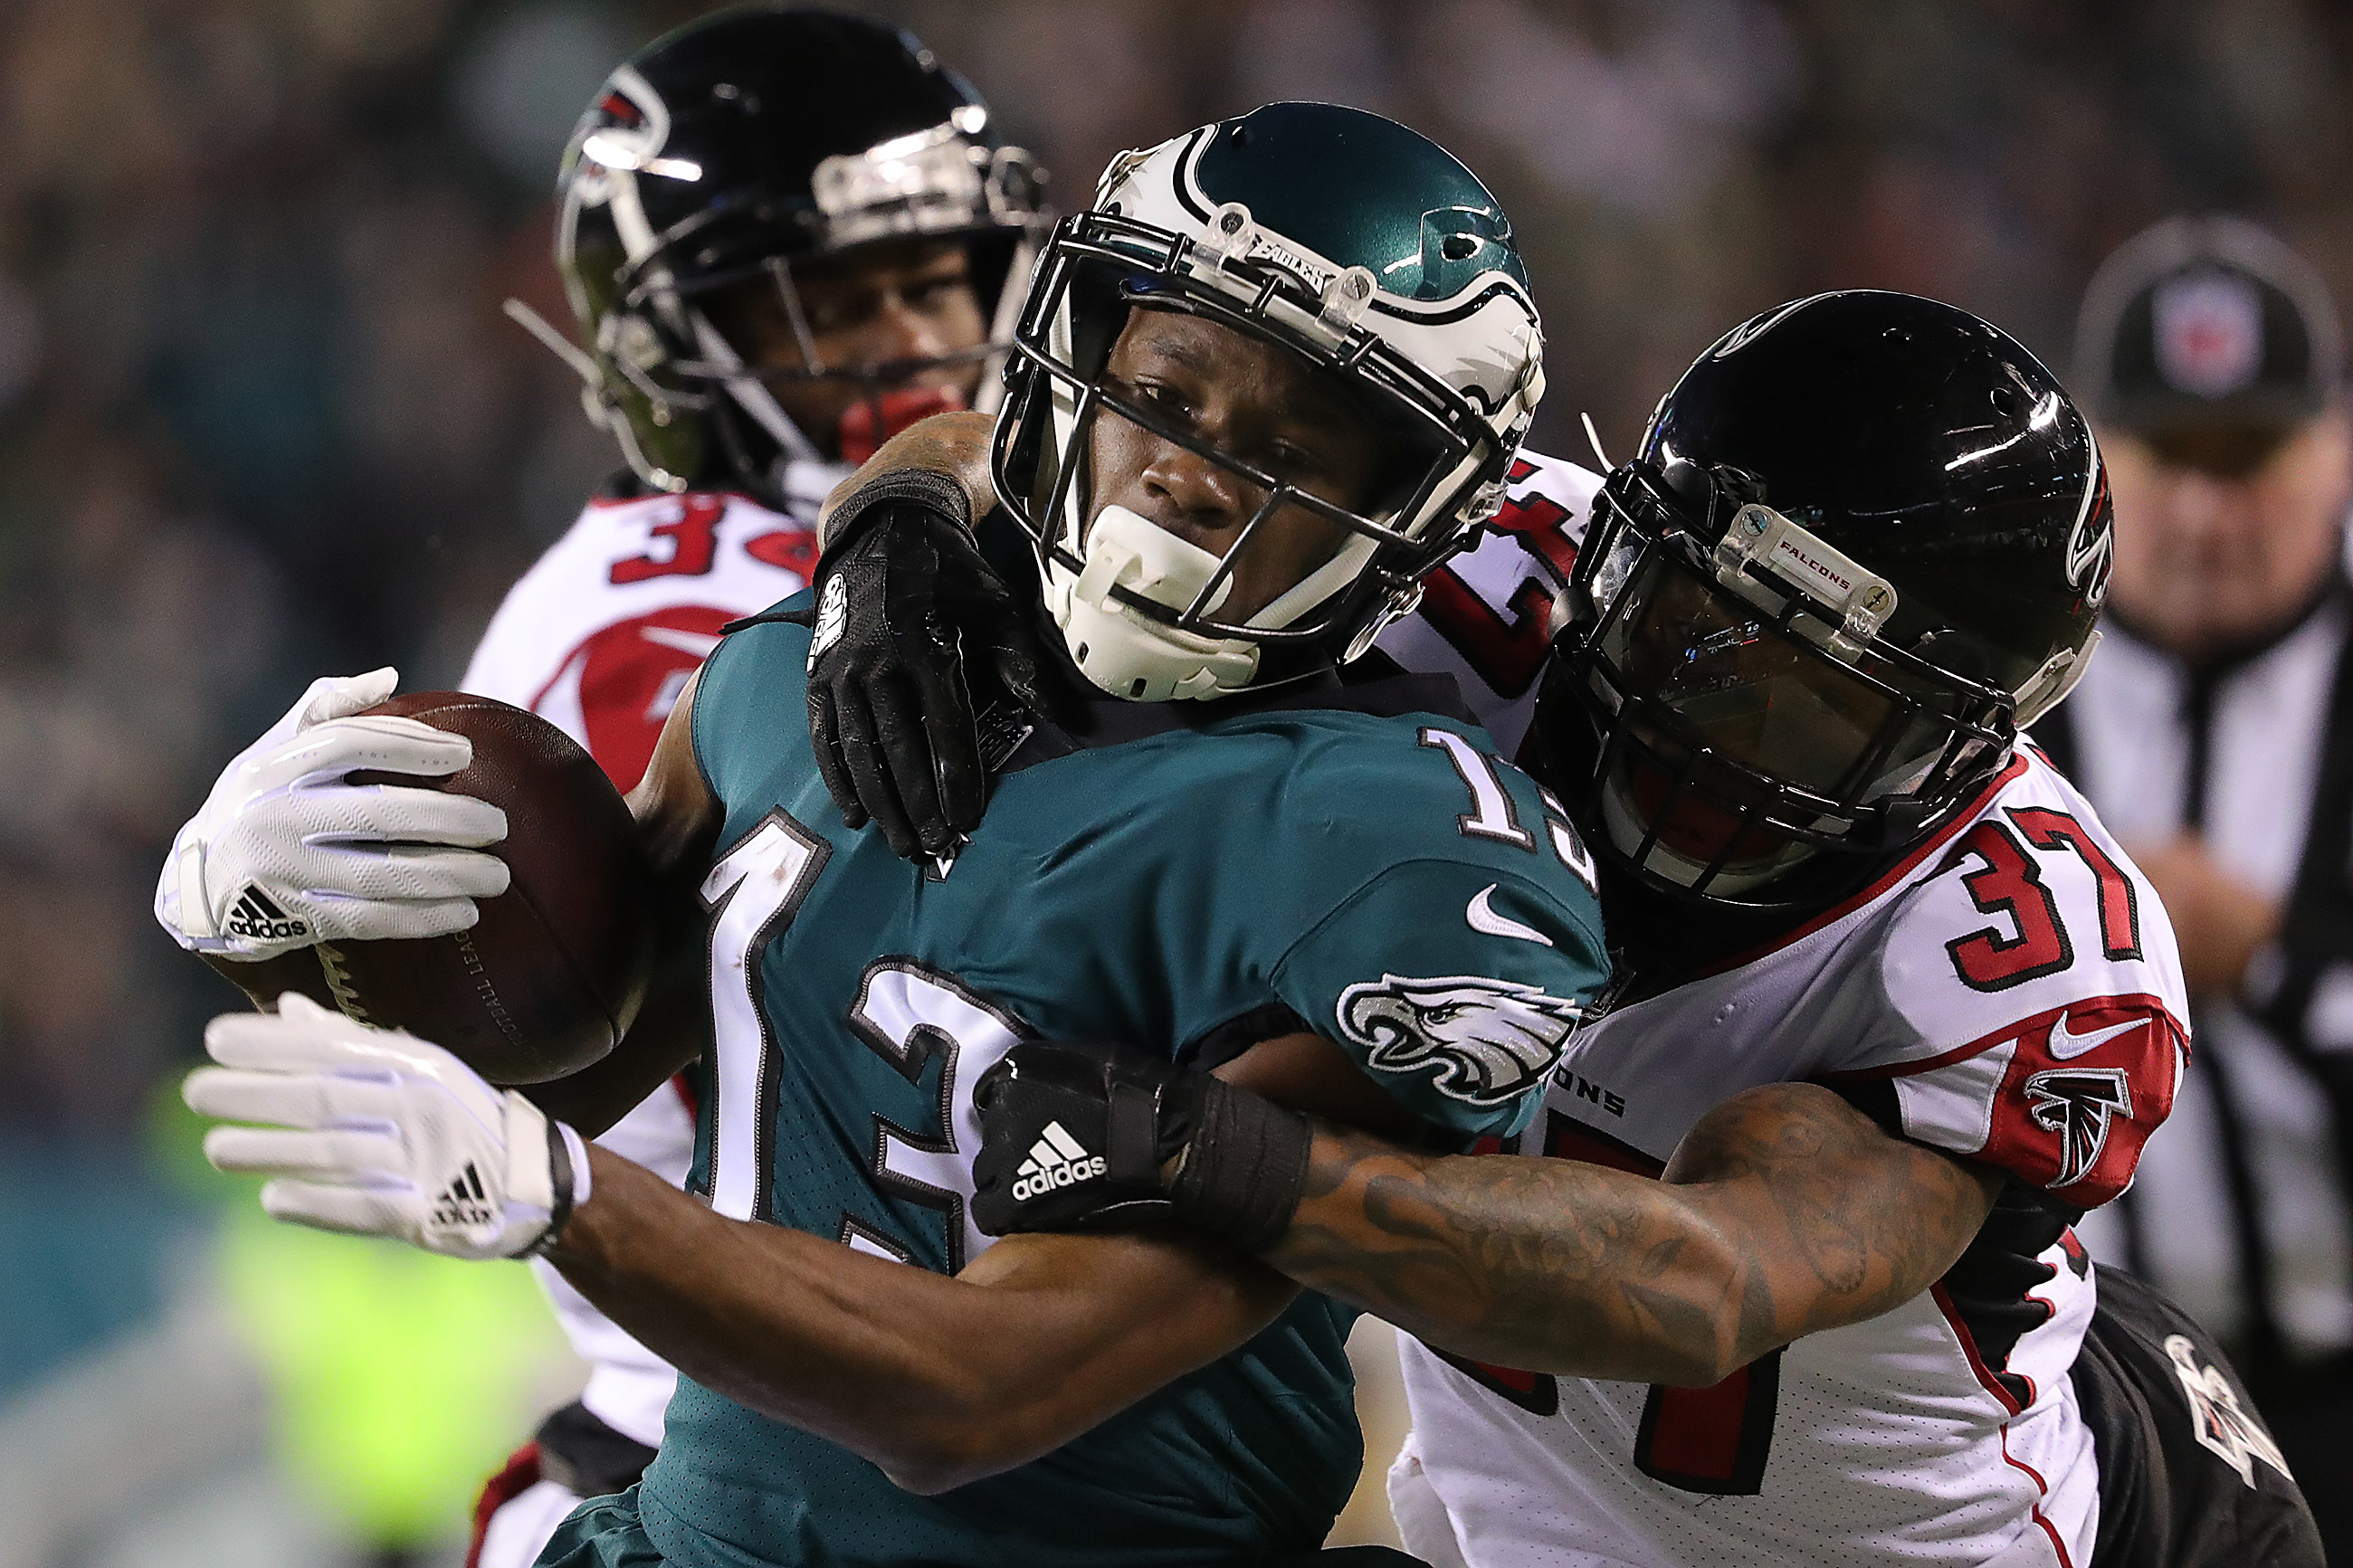 Nelson Agholor, left, is tackled after a catch against the Falcons.